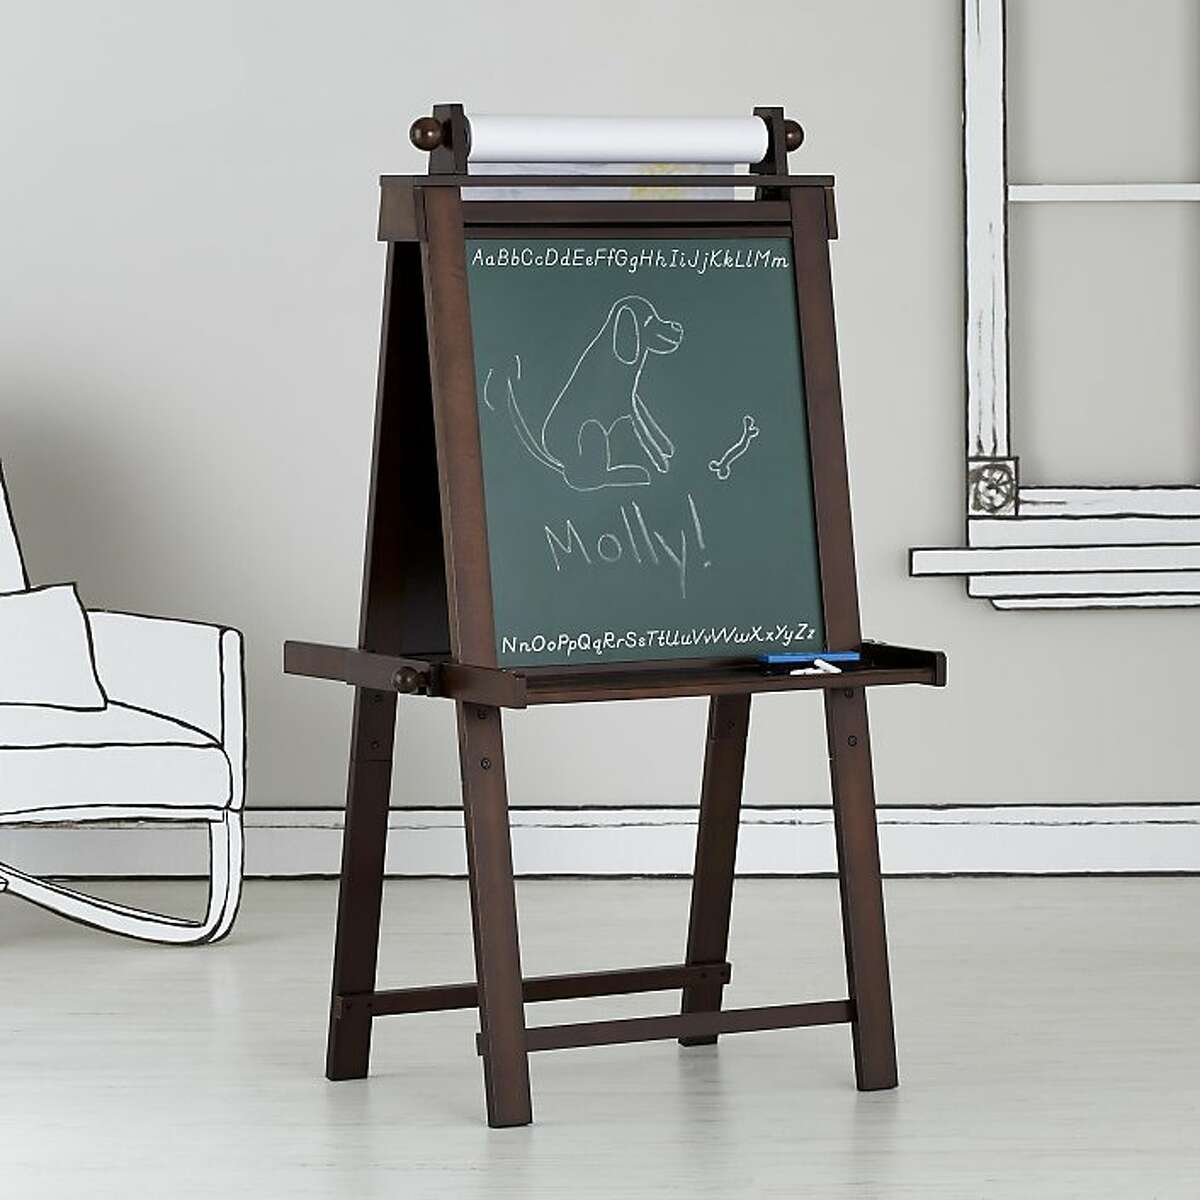 More: Easel Does It, $149, The Land of Nod (landofnod.com) If the name alone doesn t do it for you, all of the bells and whistles on this suped-up espresso-stained easel could very well do the trick. Doubling as a green chalkboard on one side and a white laminated dry erase board on the other, this wood art hub can accommodate a roll of paper and comes with holes for stashing paint cups as well trays for chalk, markers, crayons and brushes. Art supplies are sold separately. It measures 30 inches wide, 23 inches deep and 51 inches high.